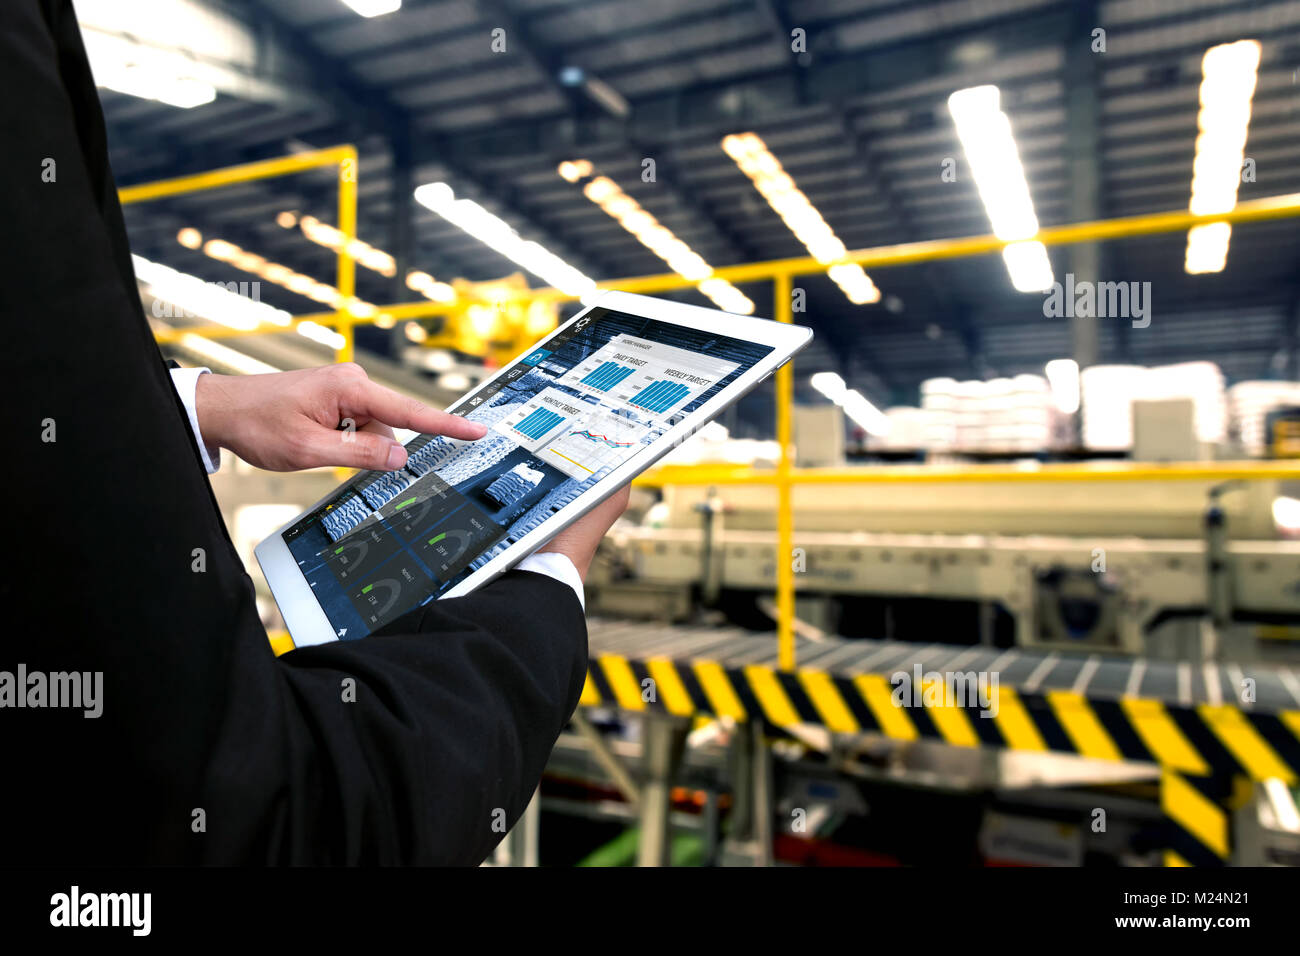 Engineer hand using tablet with machine real time monitoring system software. Automation robot arm , conveyor belt - Stock Image